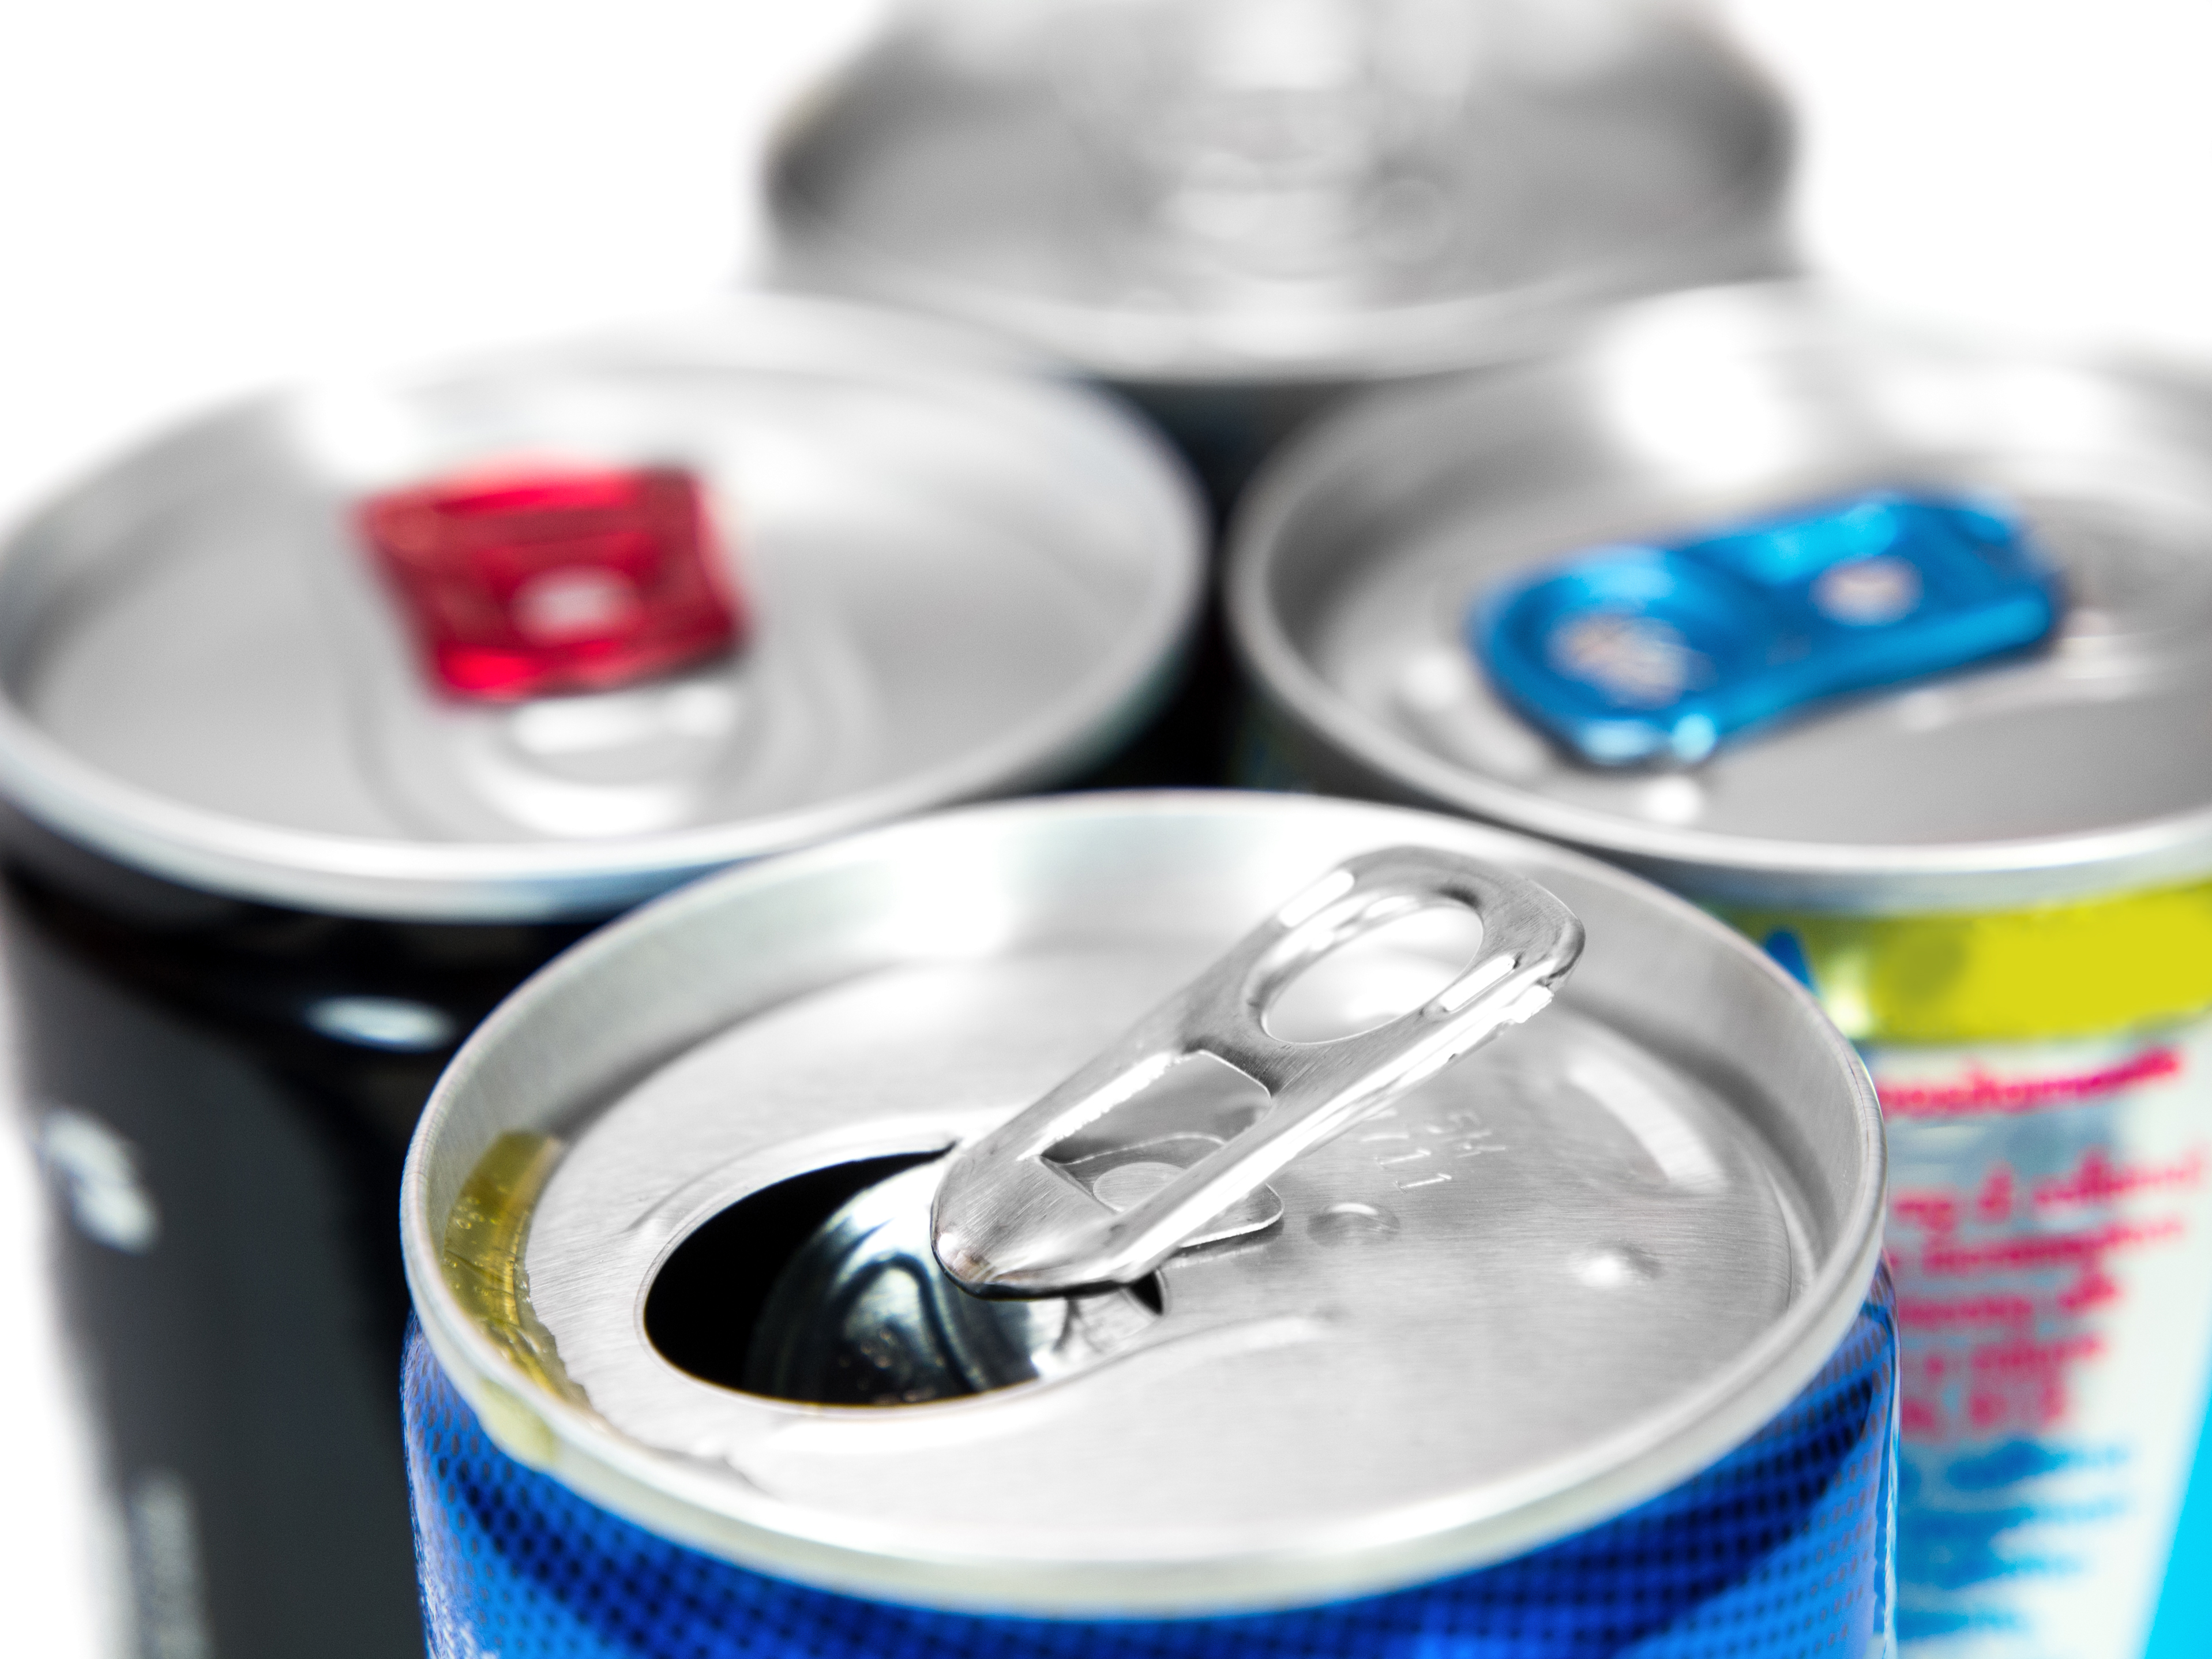 Energy Drinks: What are they really doing to your health?